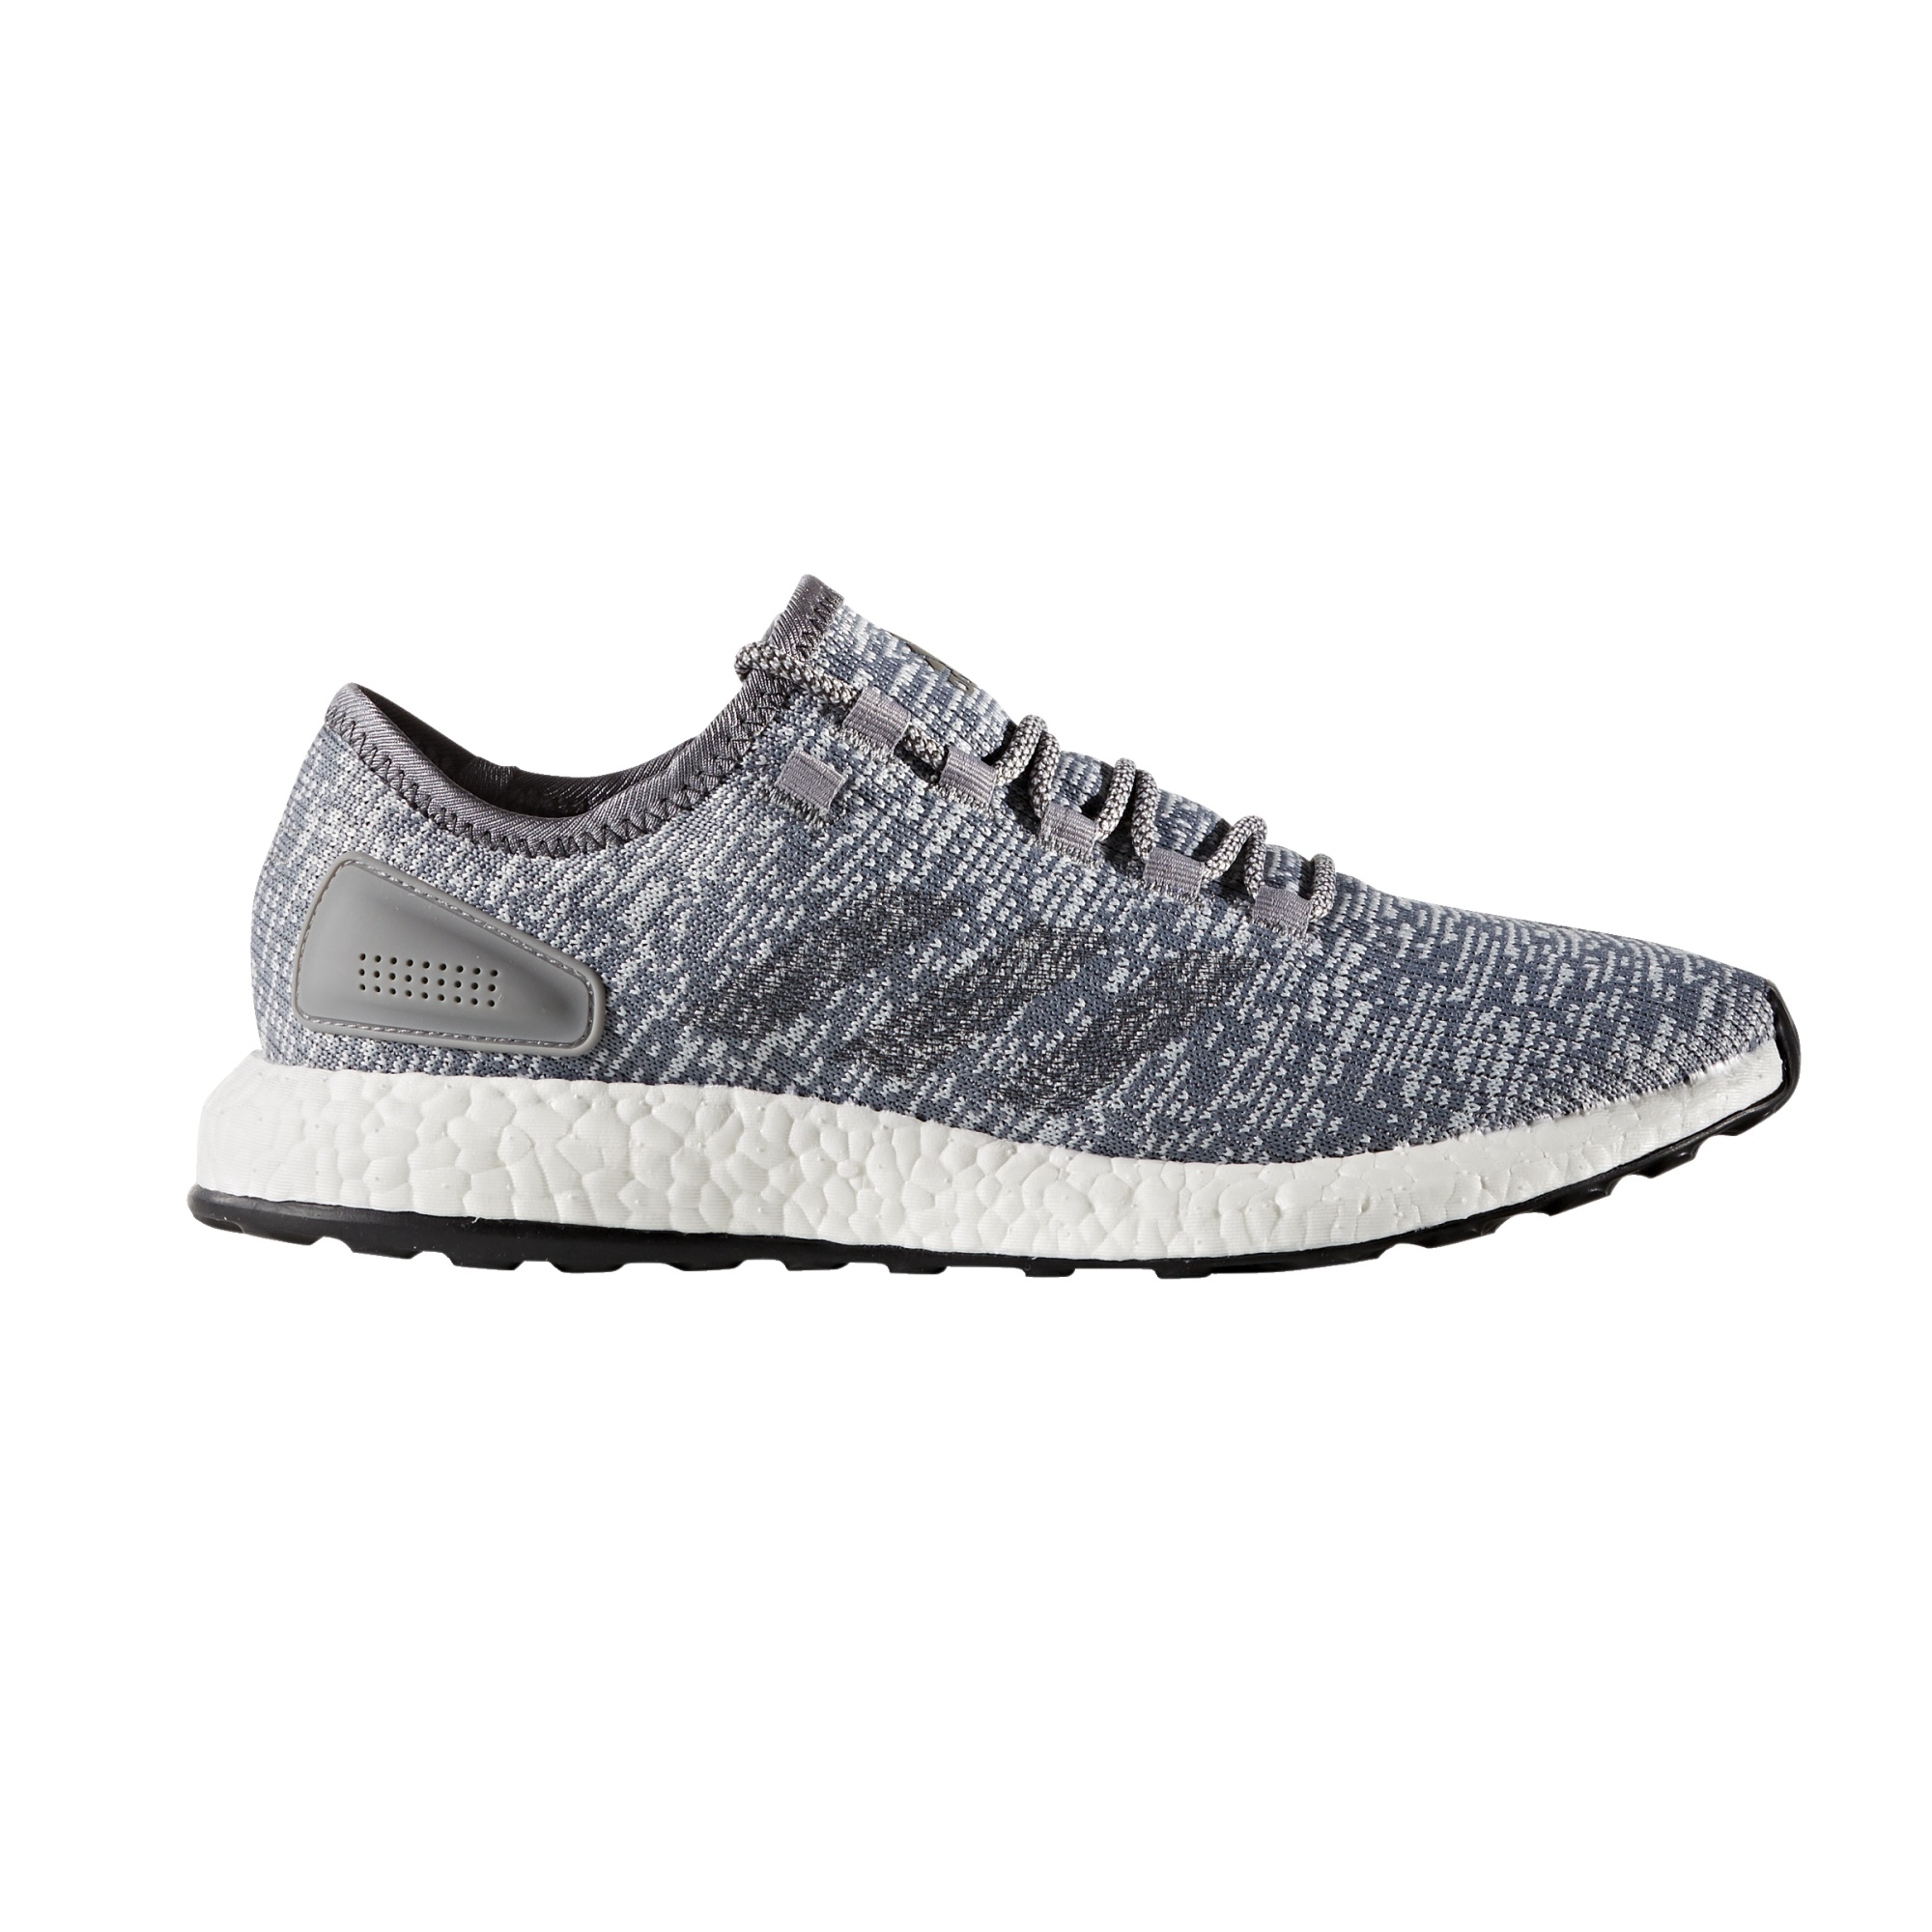 adidas shoes online cyprus